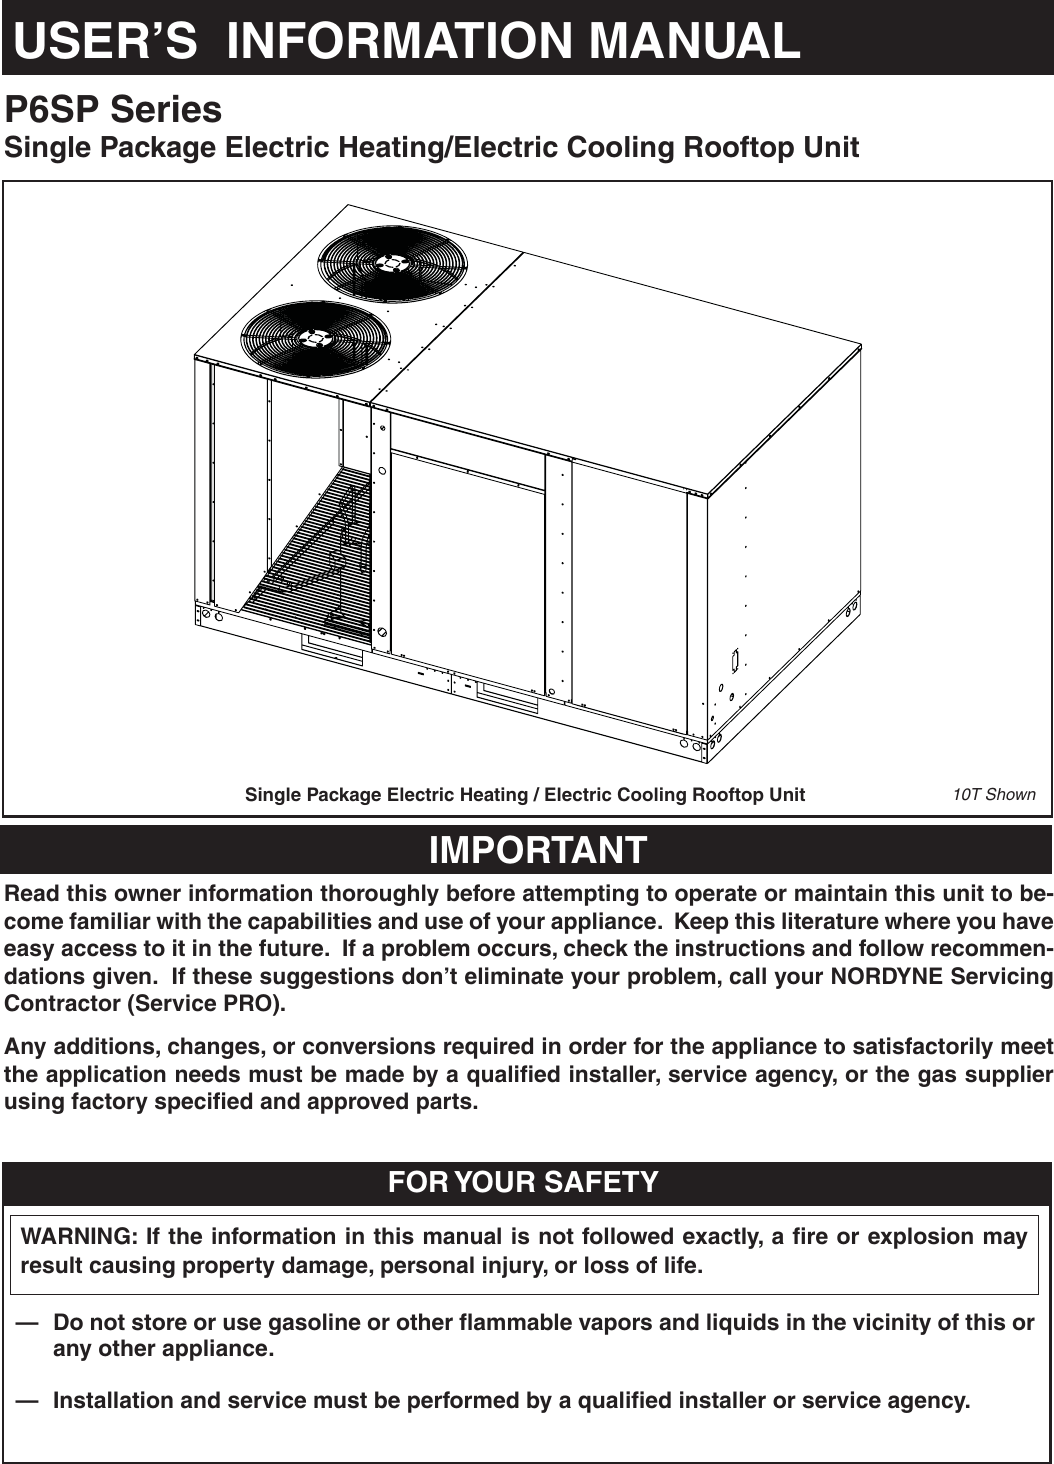 Nordyne P6Sp Series Users Manual 708879 A User 120 Mammoth